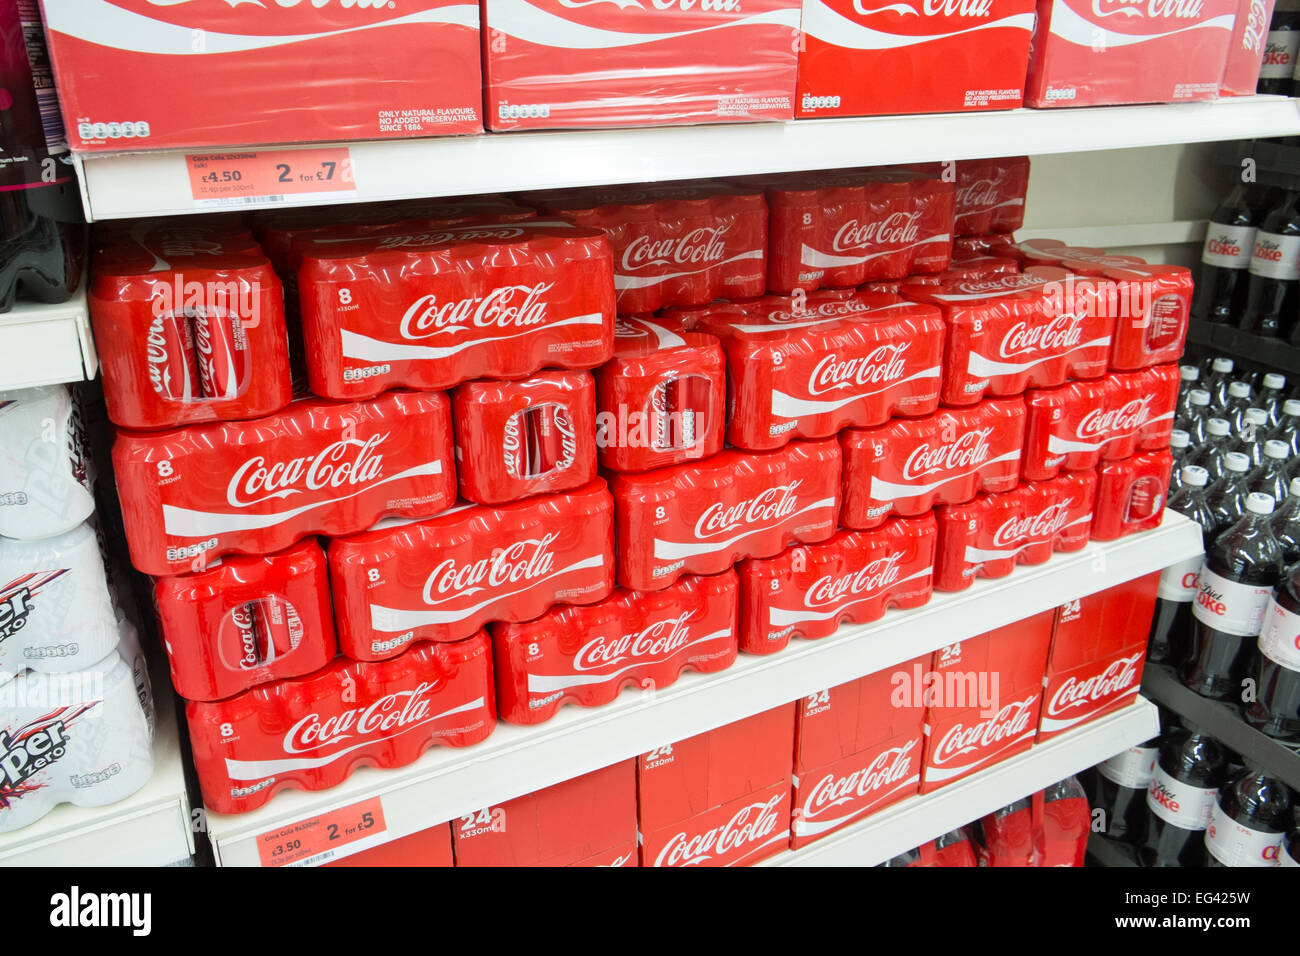 tins of coca cola for sale in a sainsburys supermarket in Derbyshire,England - Stock Image